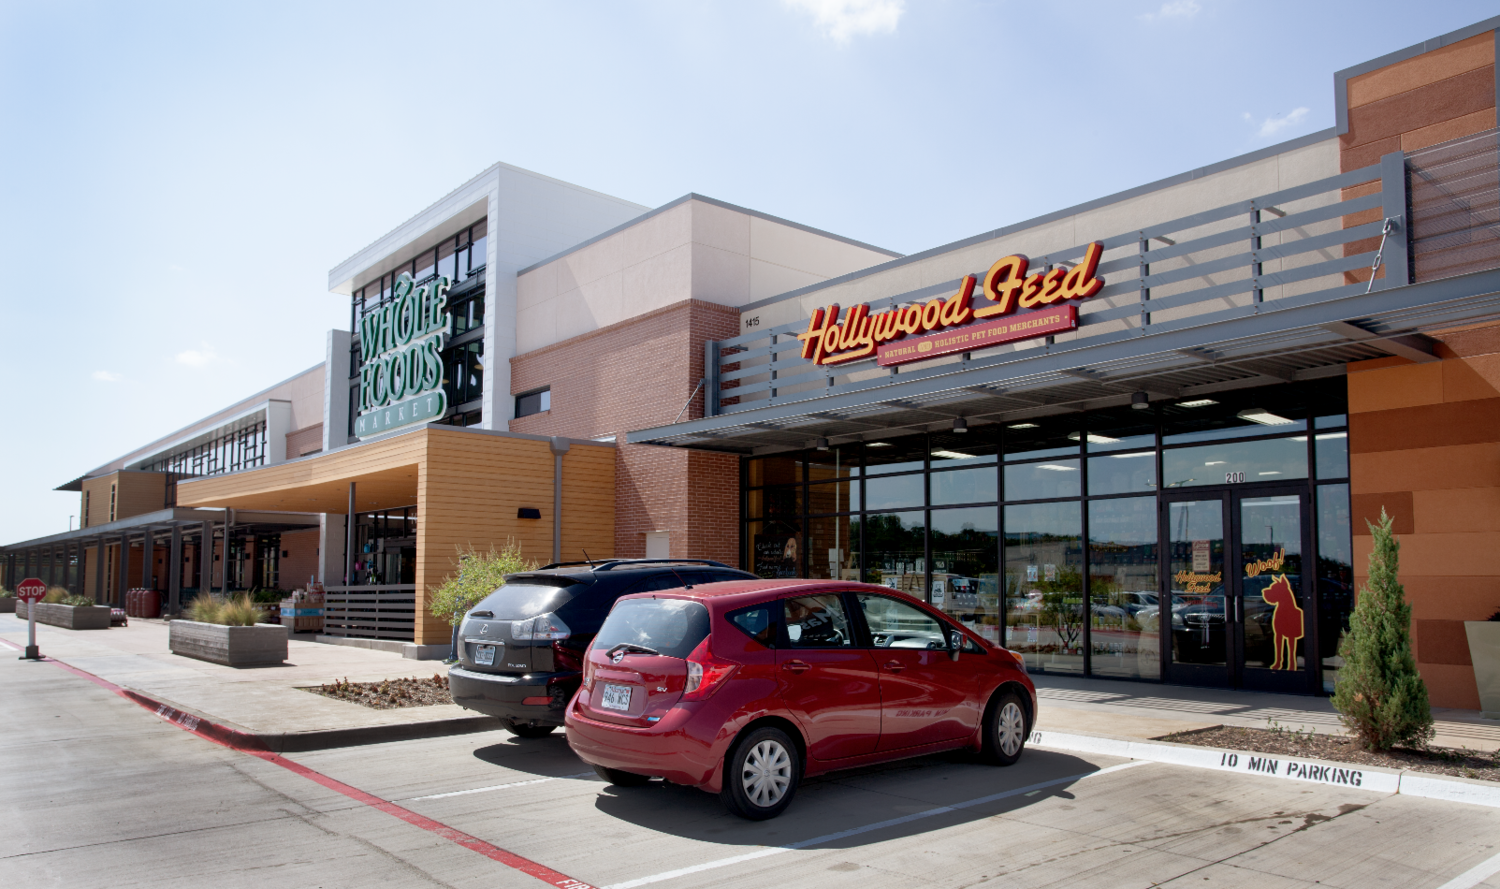 Exterior signage design and storefront decals for Hollywood Feed location in Dallas, TX